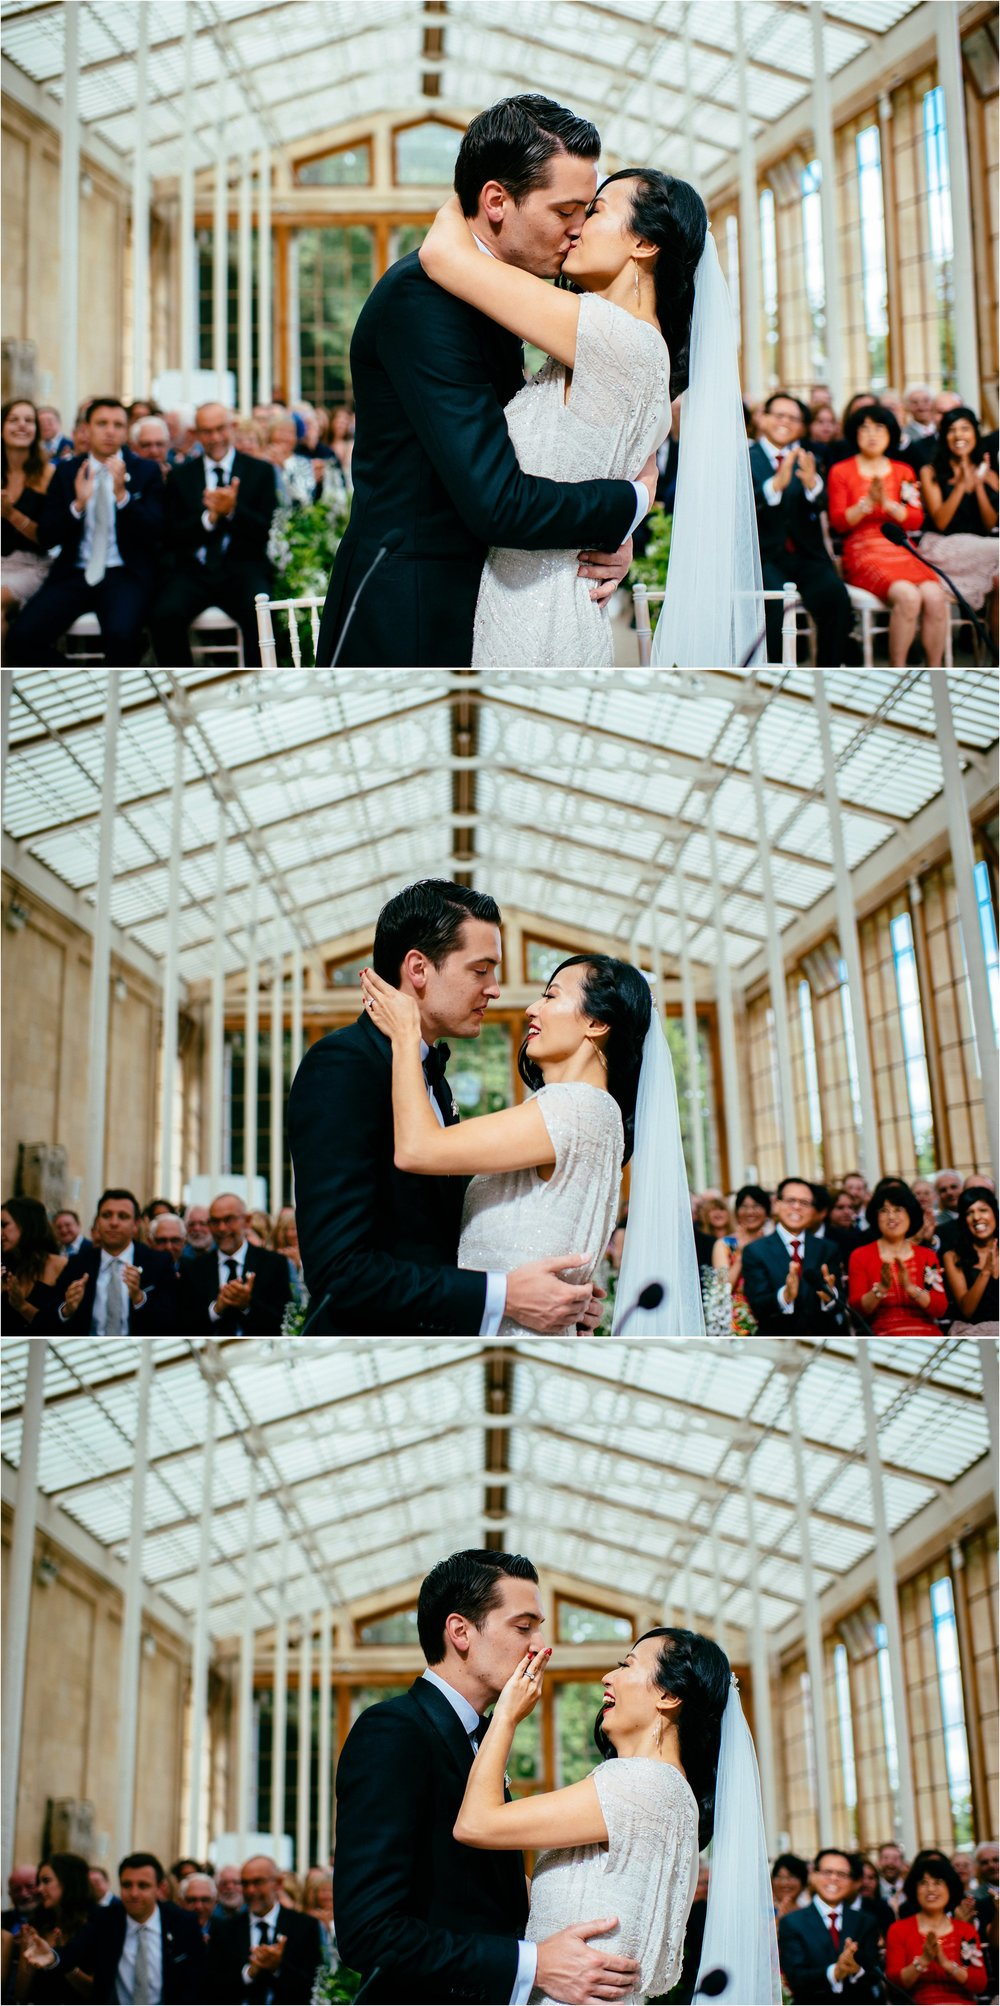 Kew Garden wedding photographer_0160.jpg